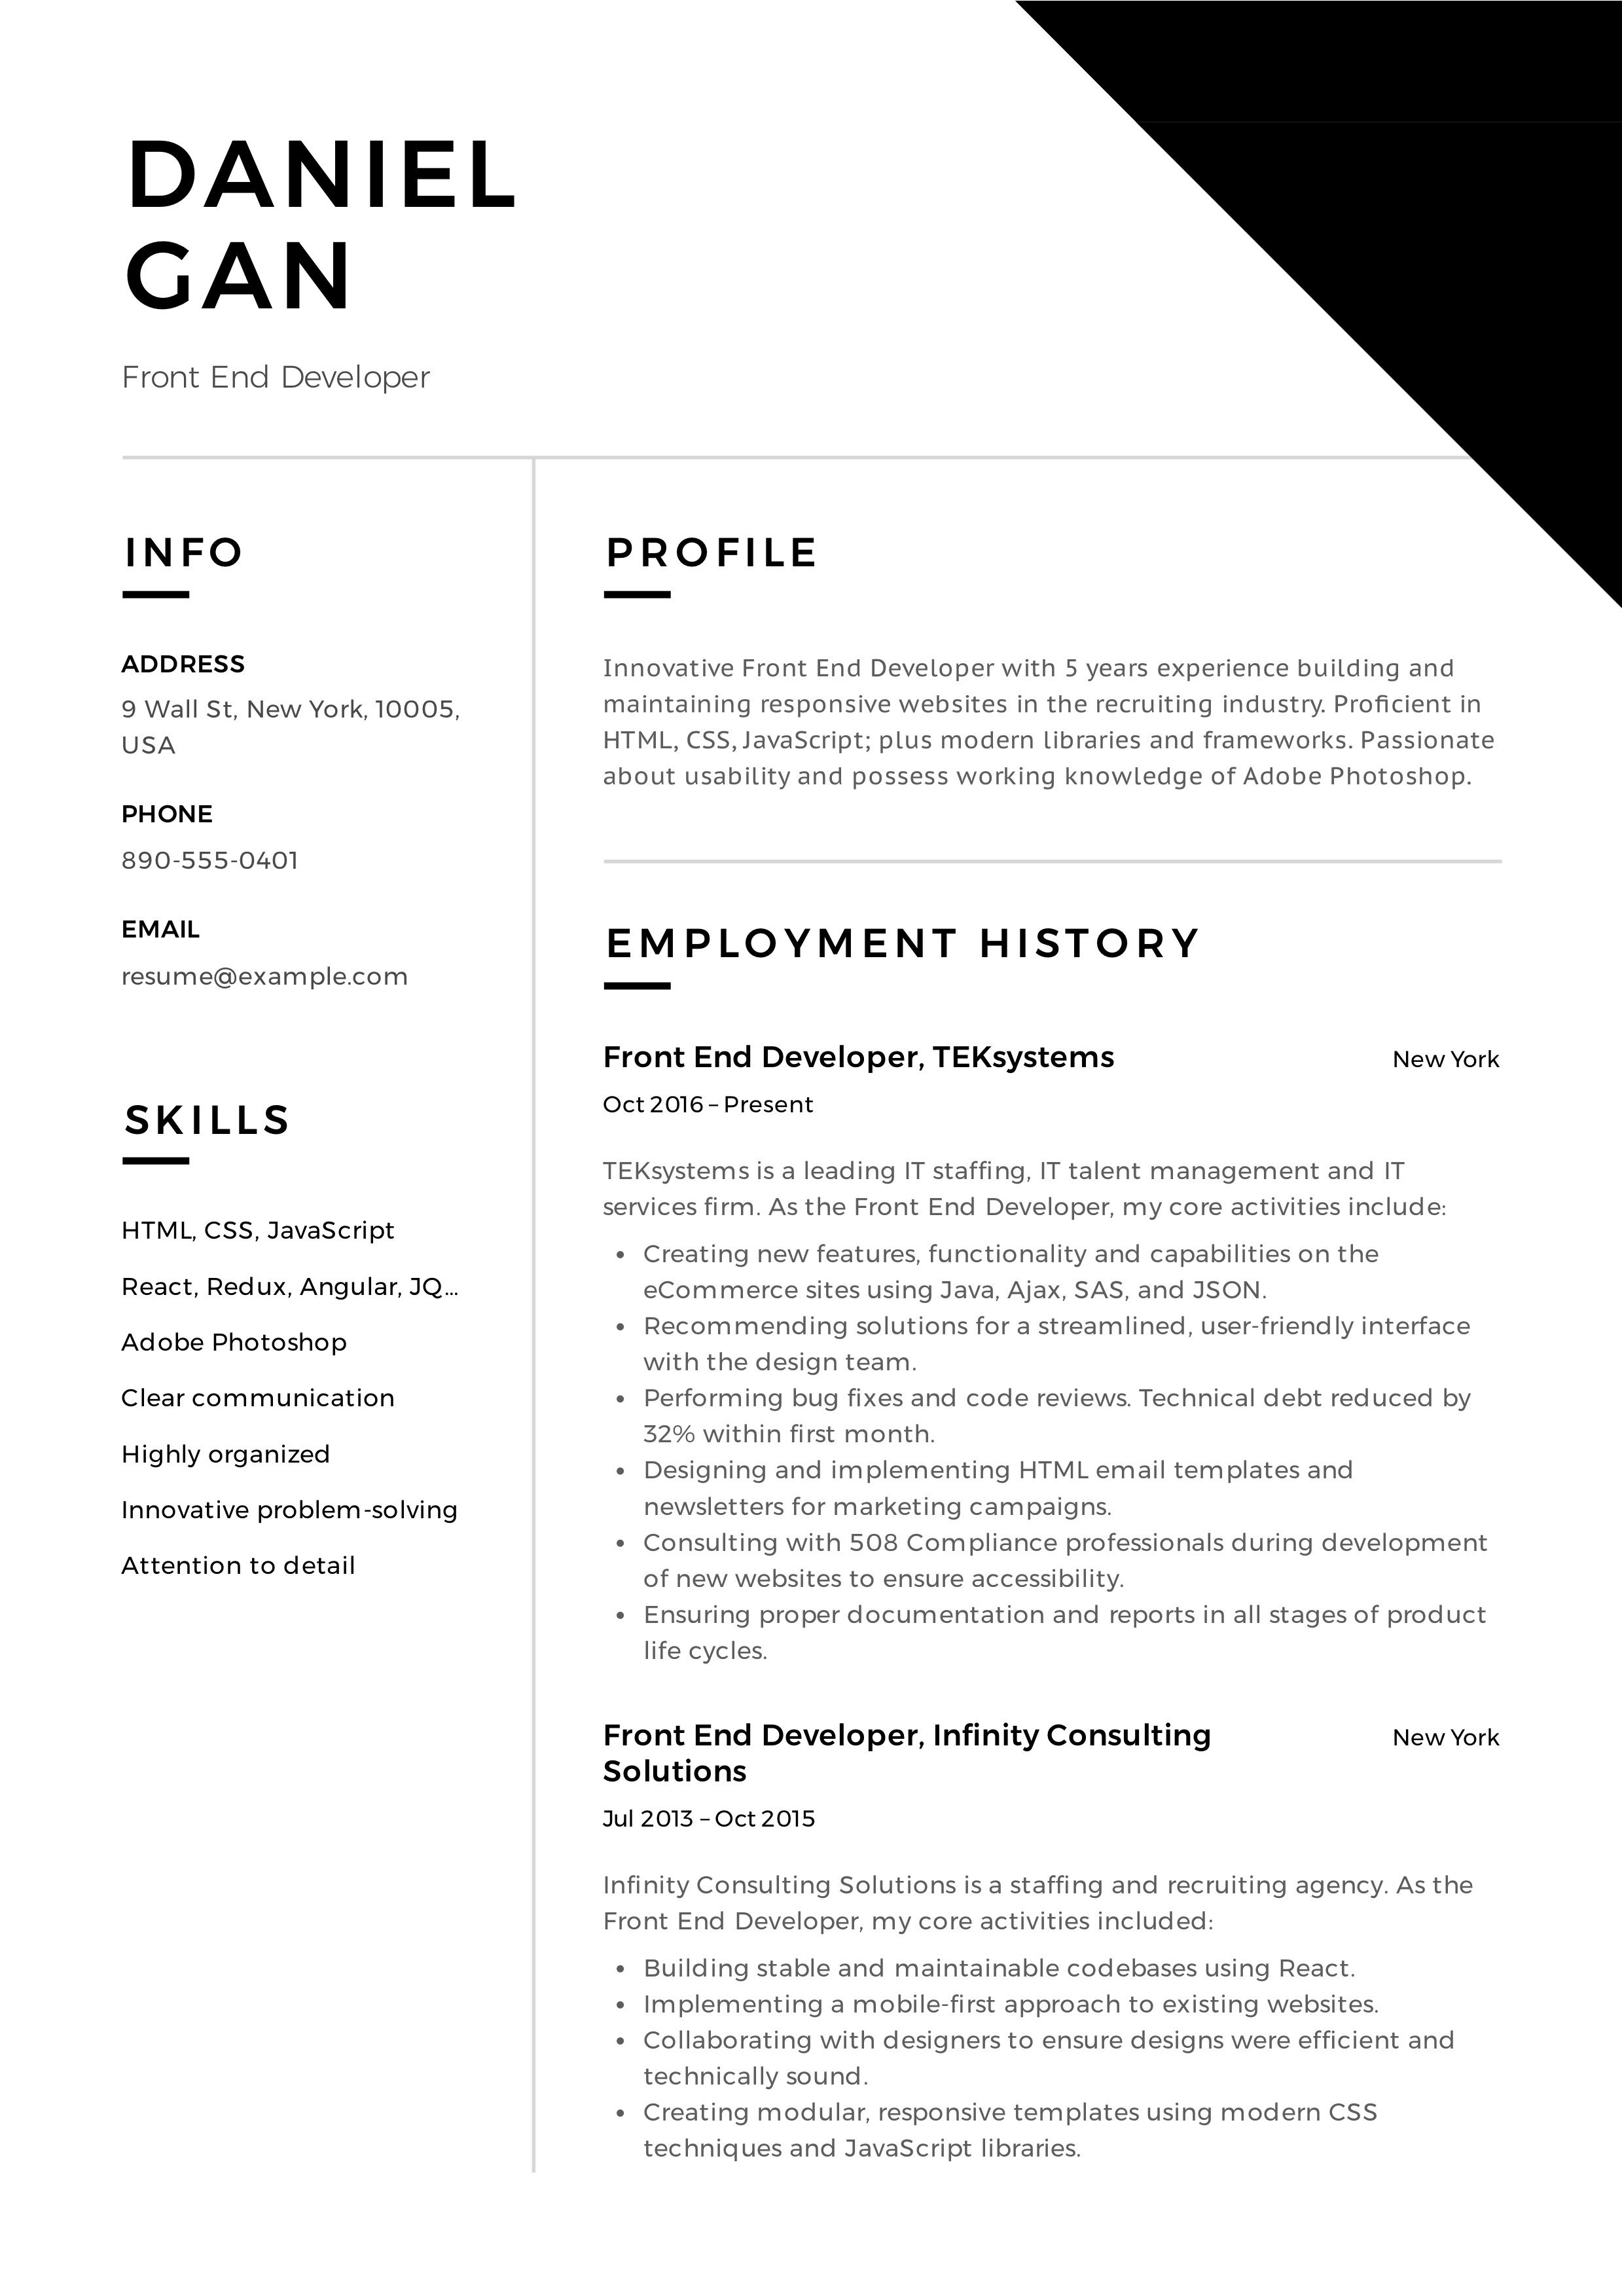 Front End Developer Resume Example Resume Examples Basic Resume Examples Administrative Assistant Resume